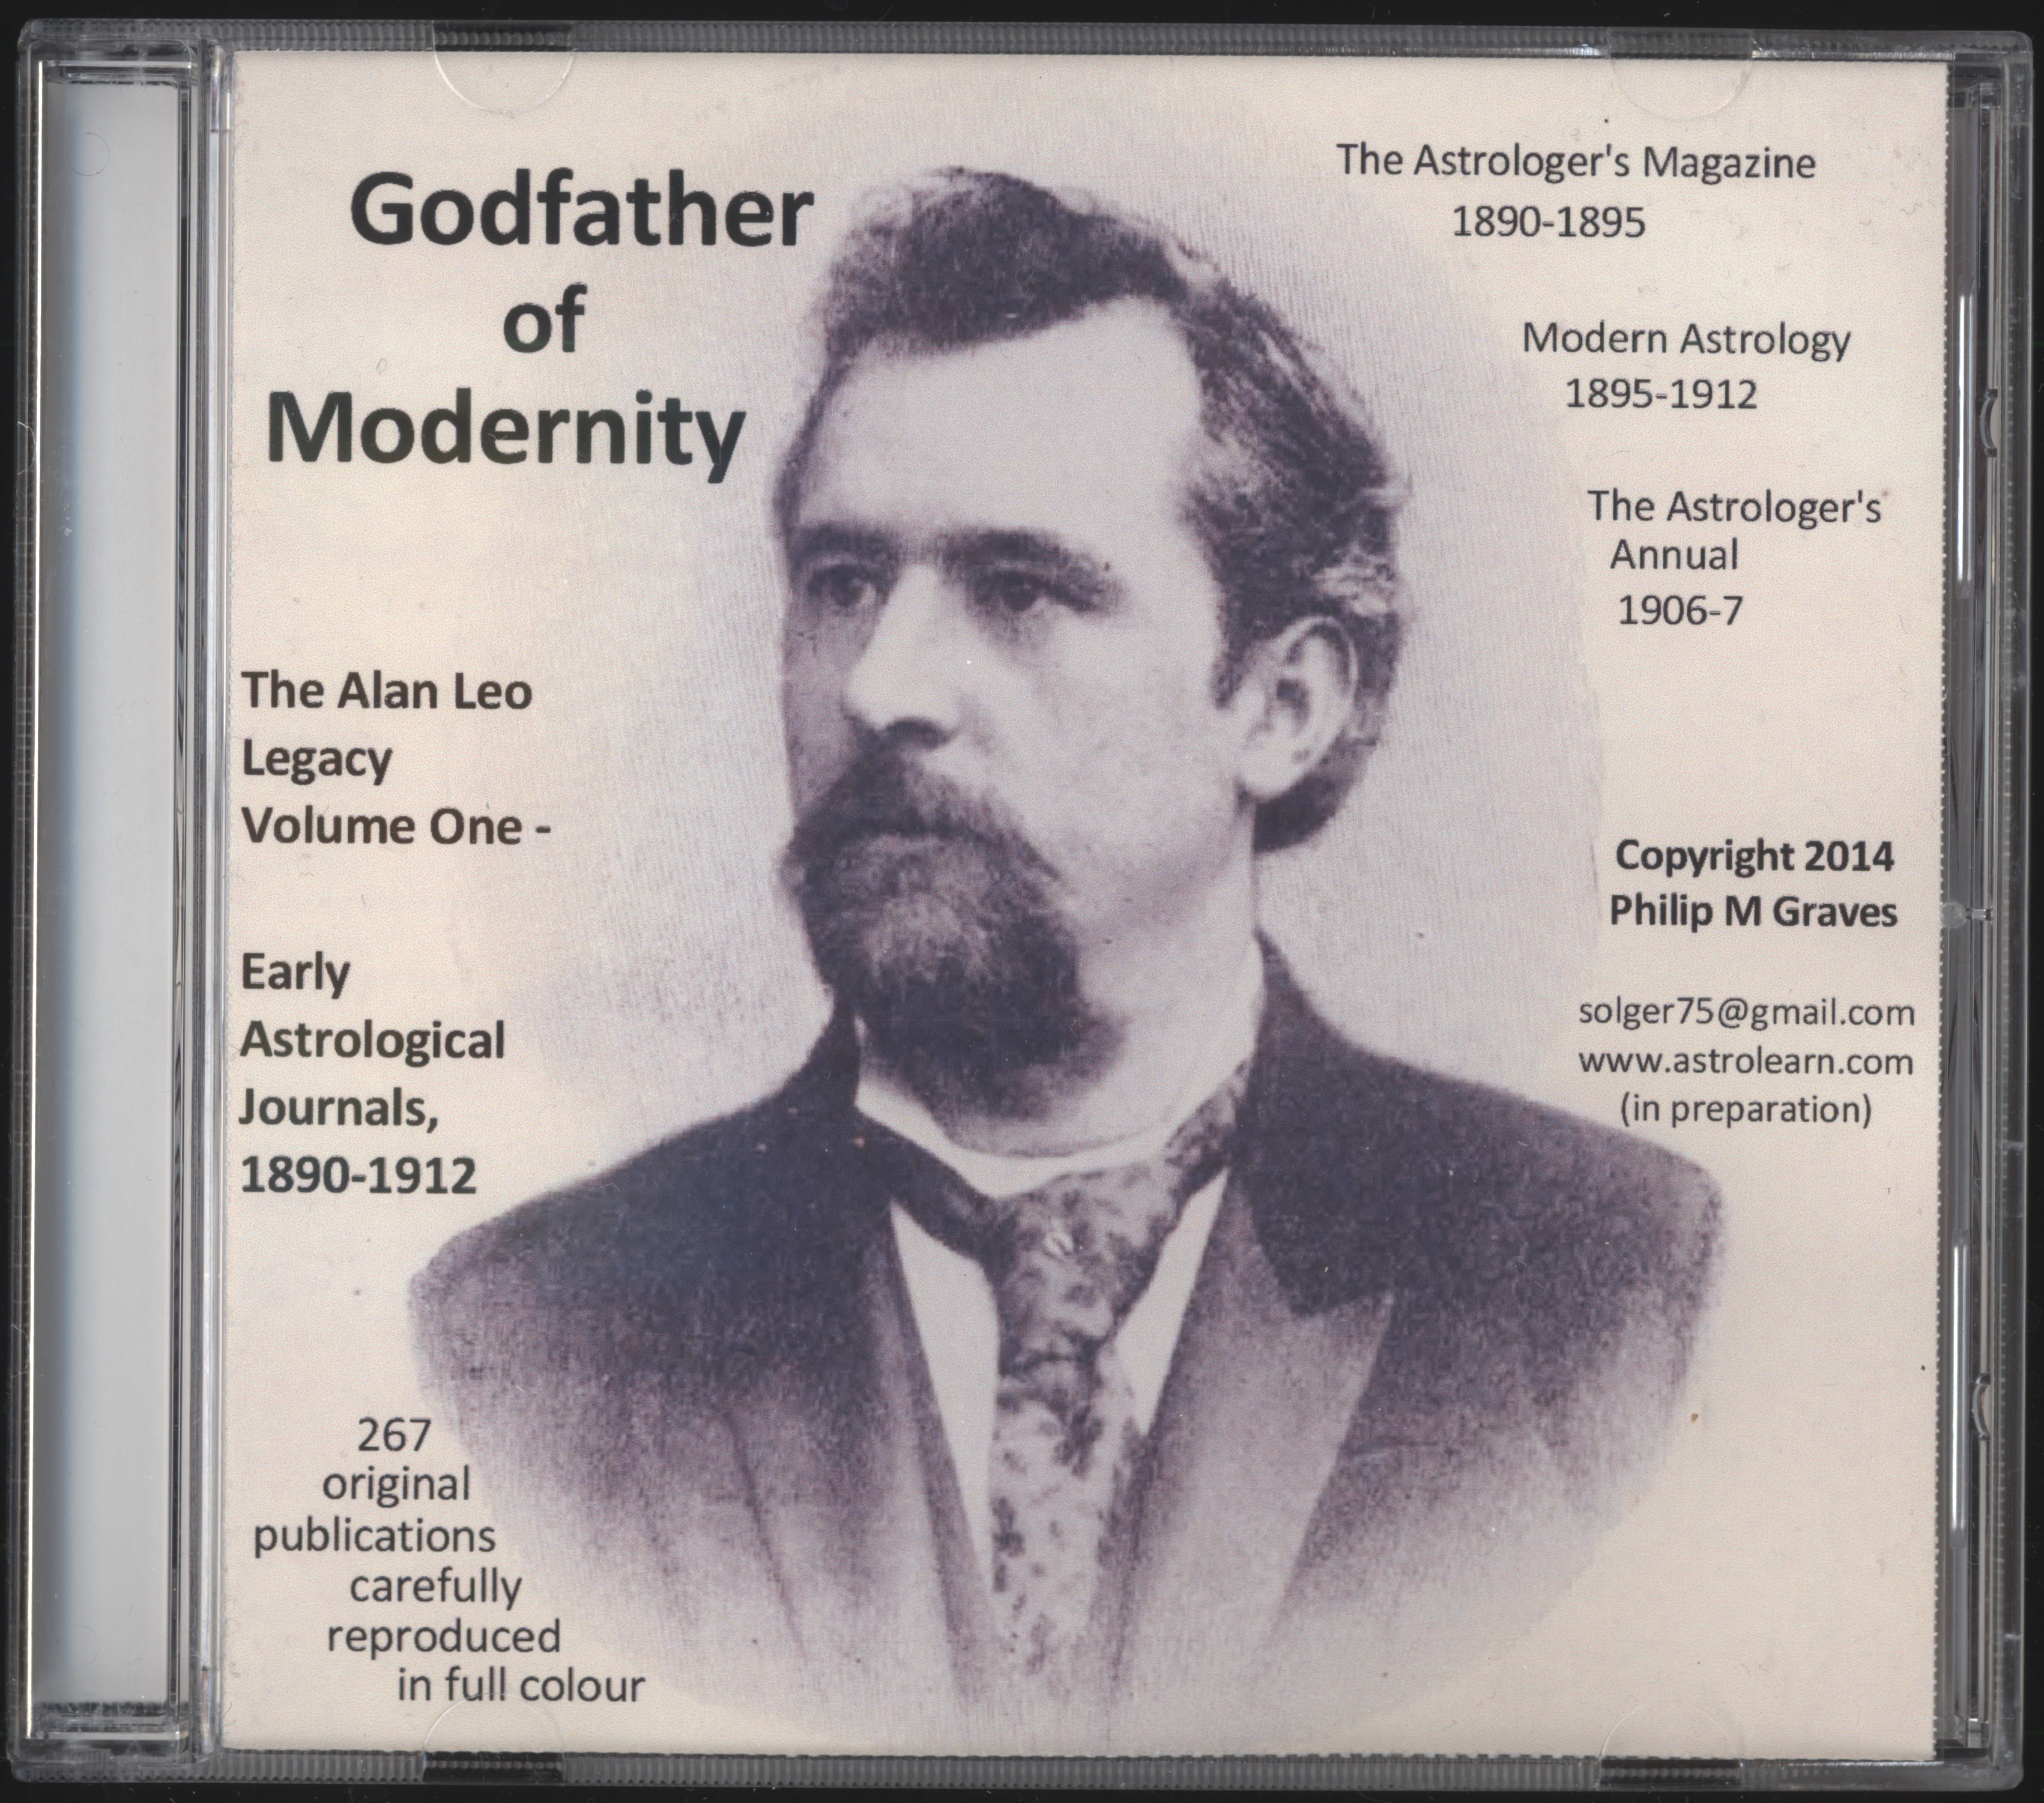 Godfather of Modernity: the Alan Leo Legacy Volume One - Early Astrological Journals, 1890-1912, DVD, Front Cover